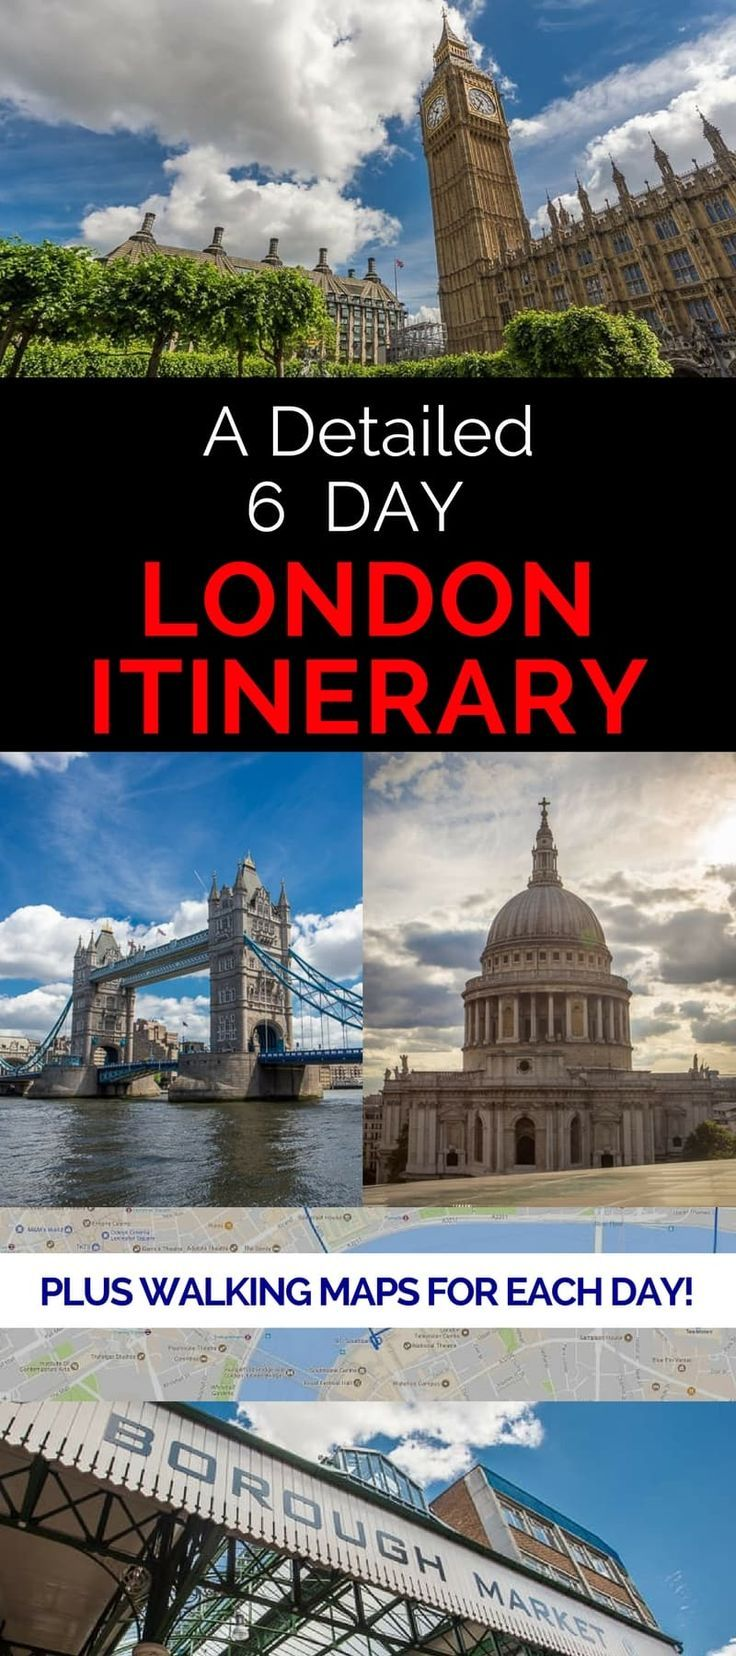 London Itinerary: How to Spend 6 Days in London #travelengland